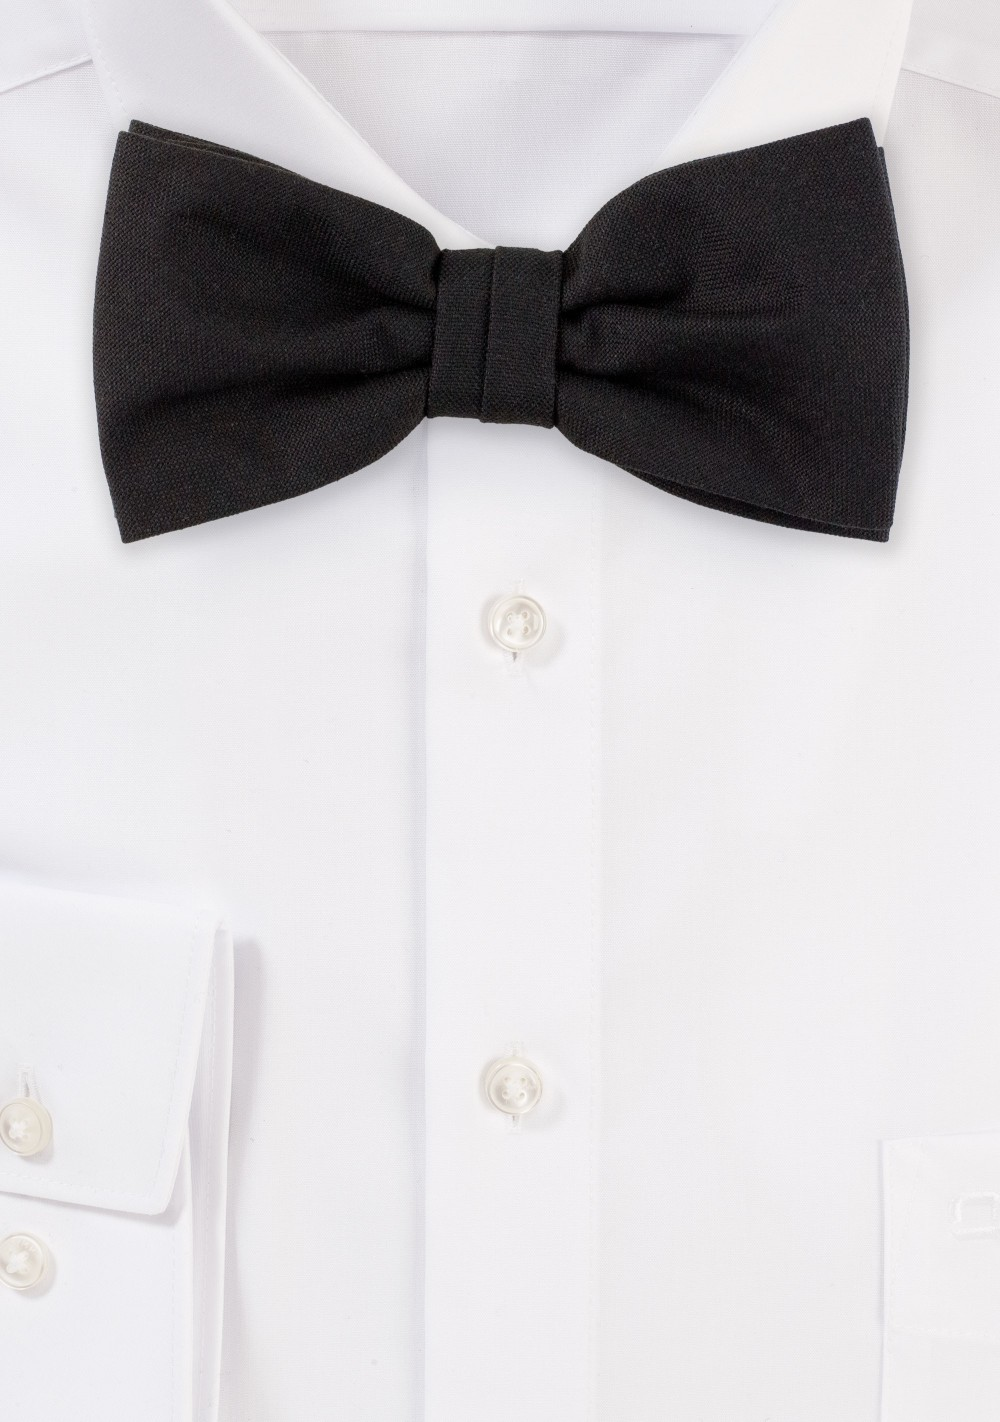 Matte Black Solid Color Bow Tie